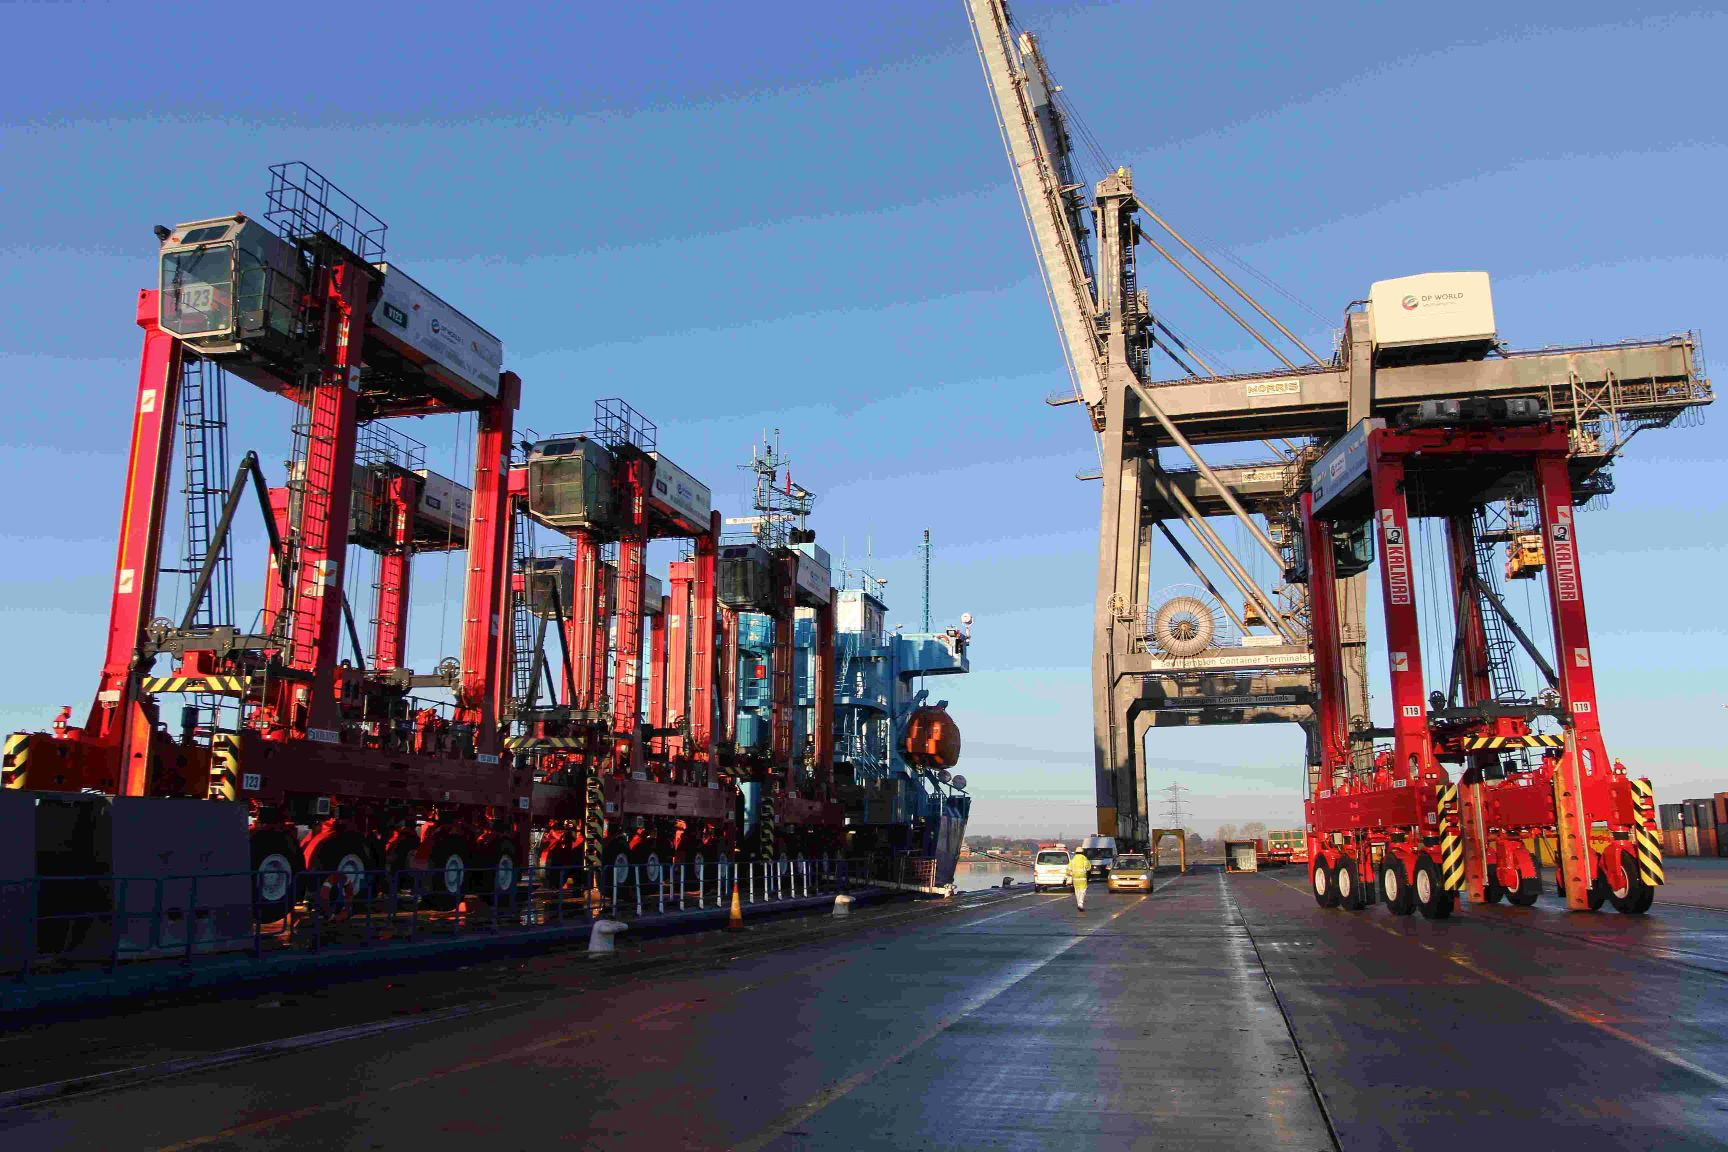 Six new container carriers boost dock capacity